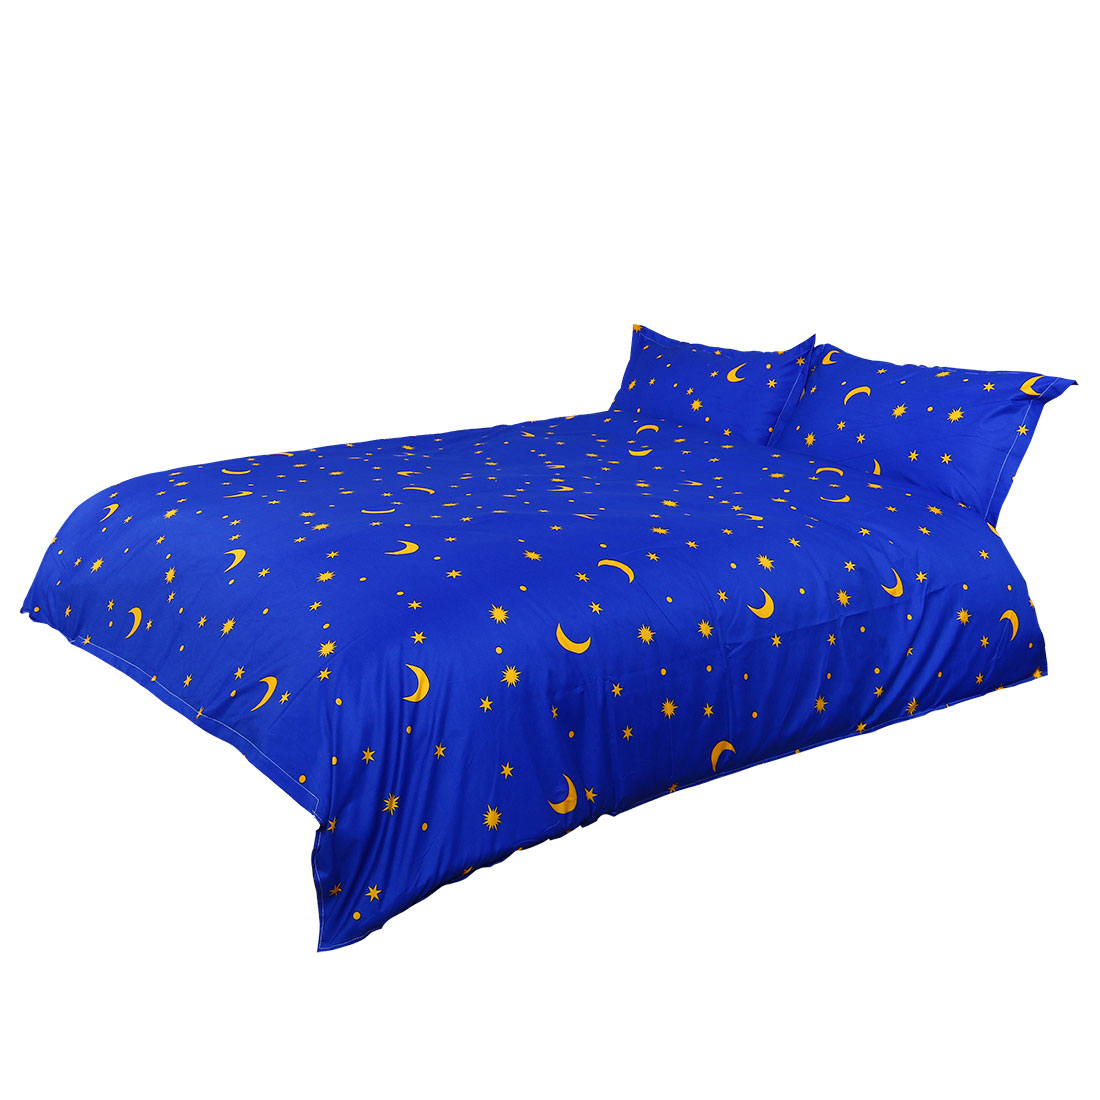 Blue Moon Stars Pattern Duvet Cover Pillowcase Quilt Cover Bedding Set Super King Size